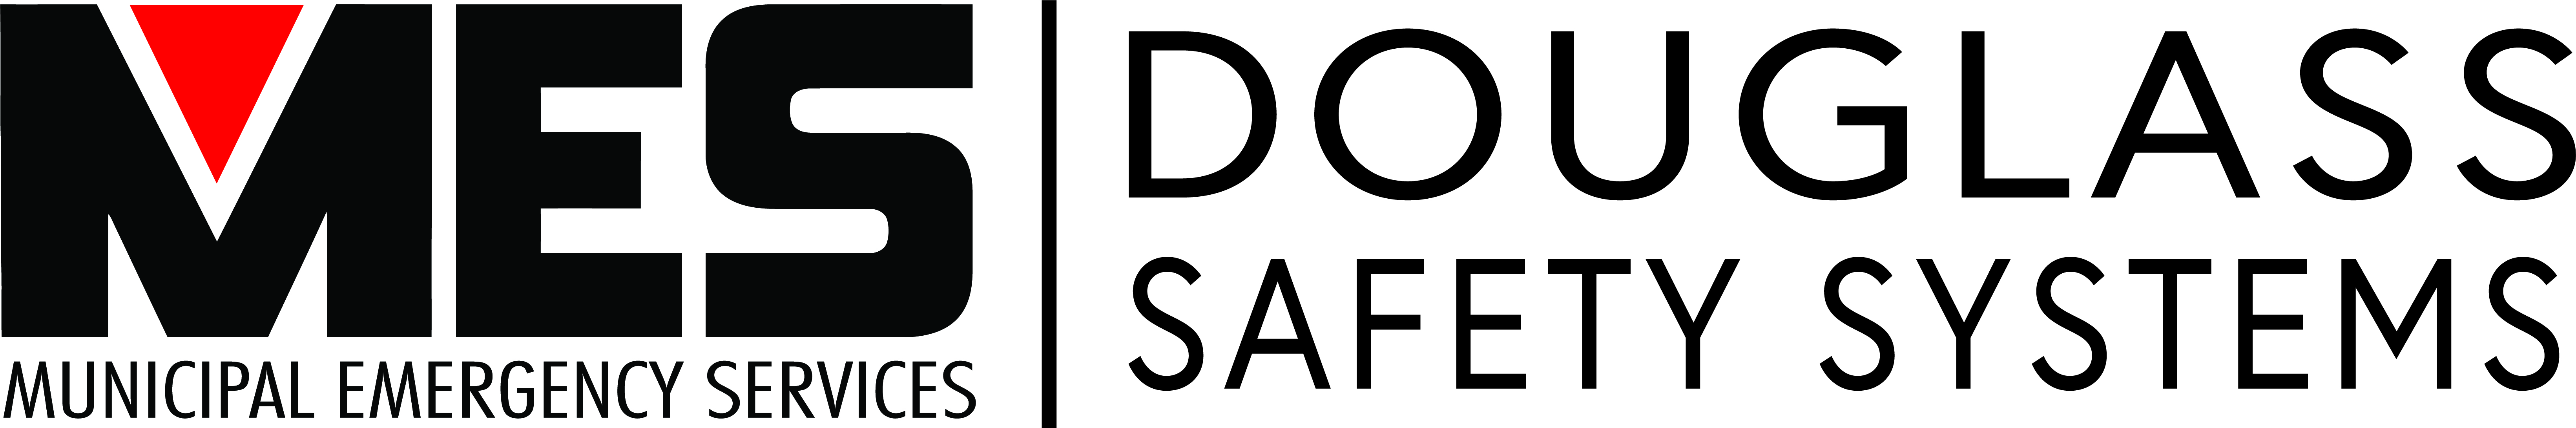 Municipal Emergency Services, Inc. (MES) Announced Today It Has Acquired Douglass Safety Systems, LLC